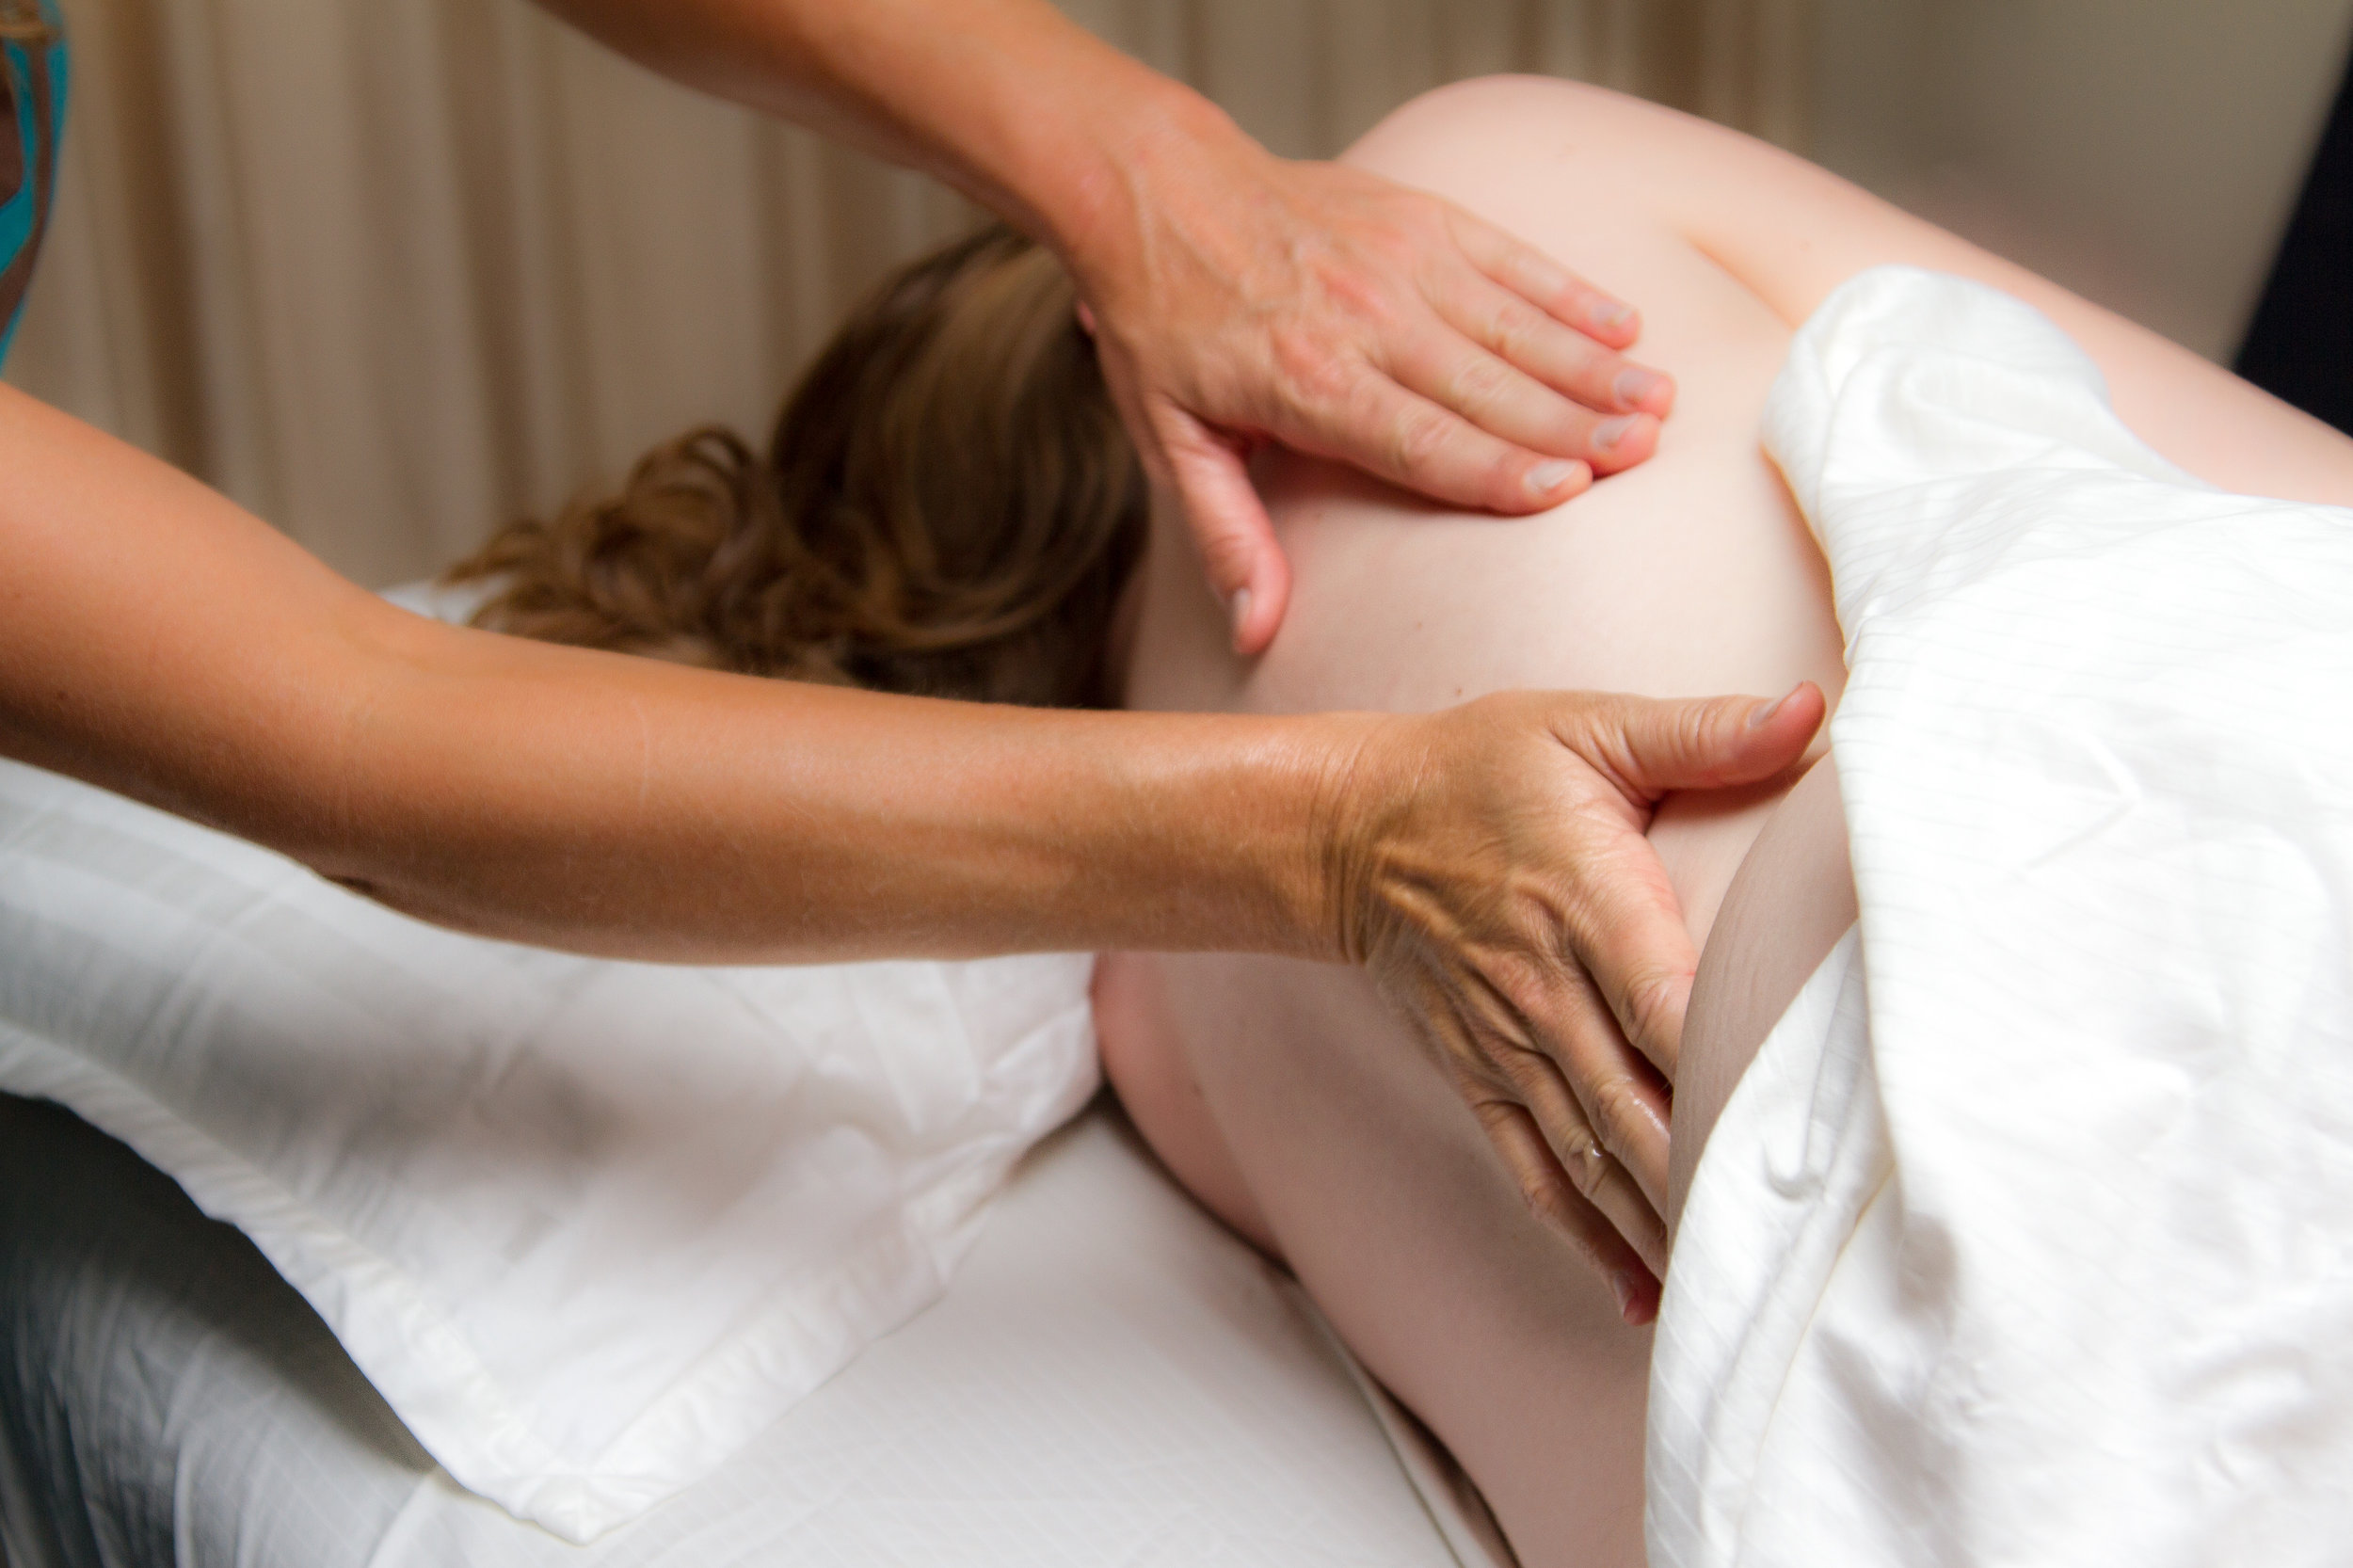 1807_Julie Lefmann Massage_011.jpg